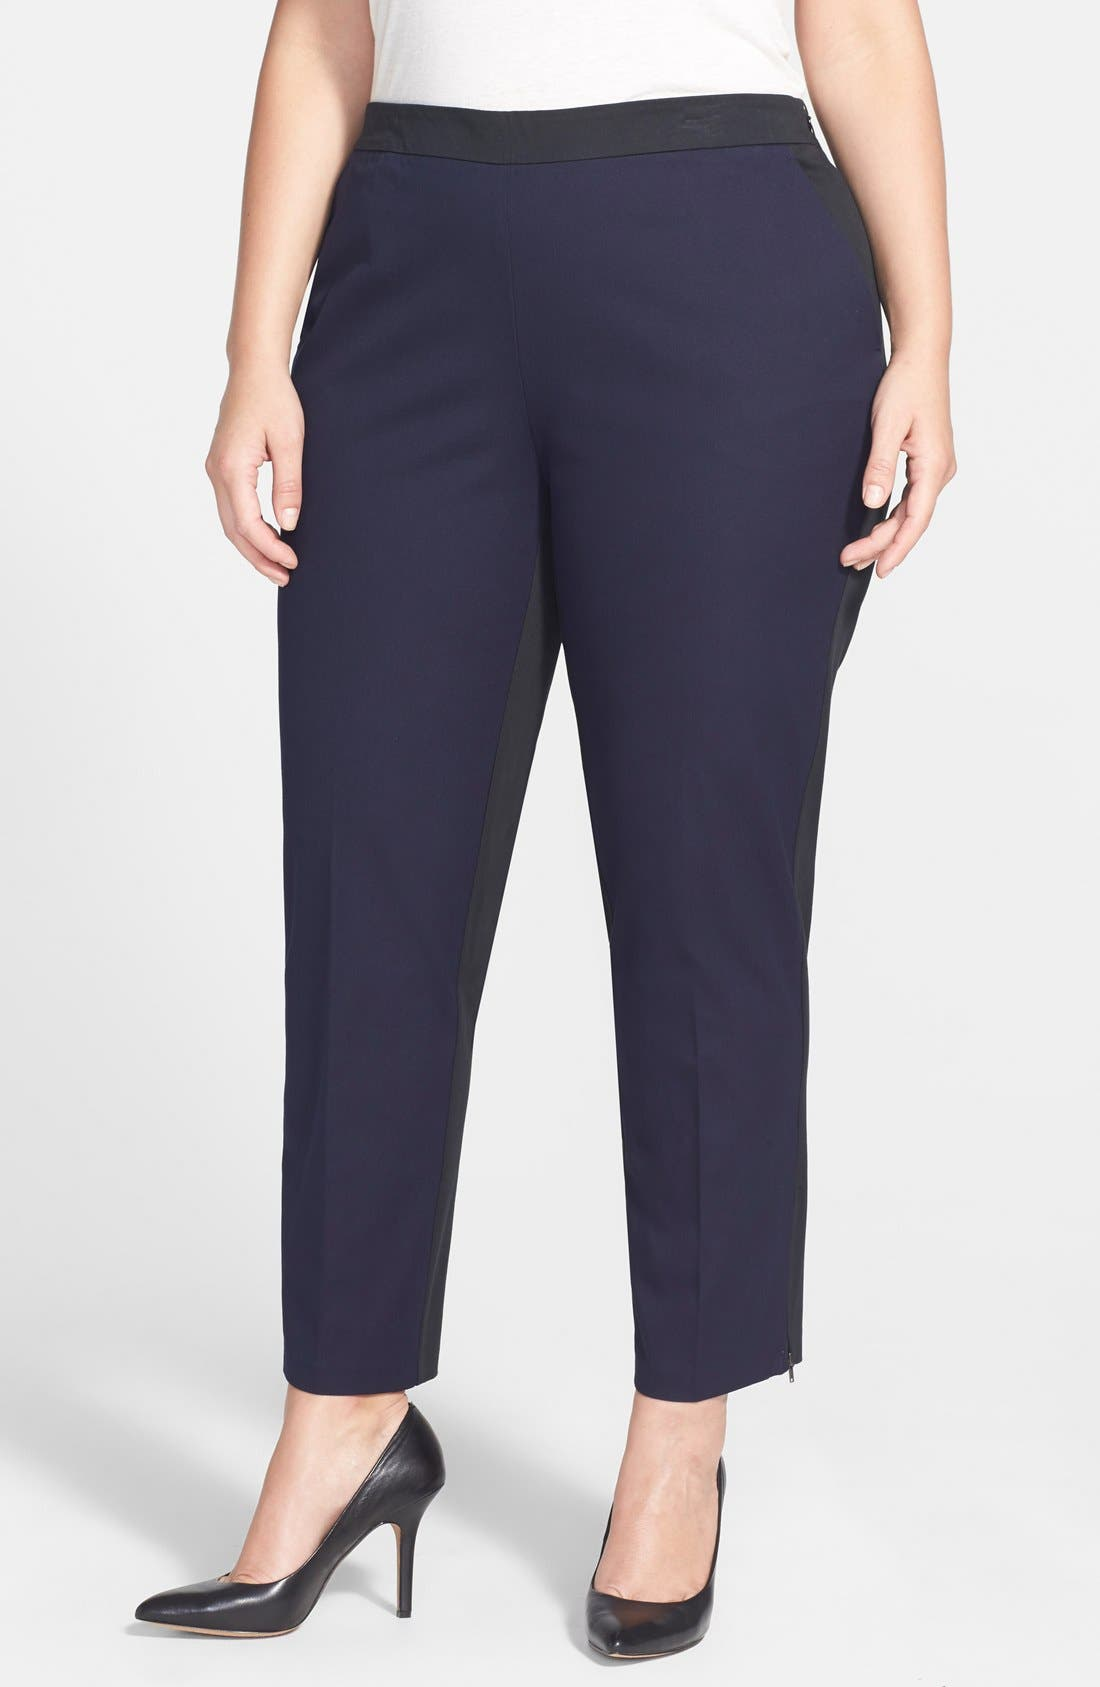 Alternate Image 1 Selected - Eileen Fisher Colorblock Slim Stretch Twill Ankle Pants (Plus Size)